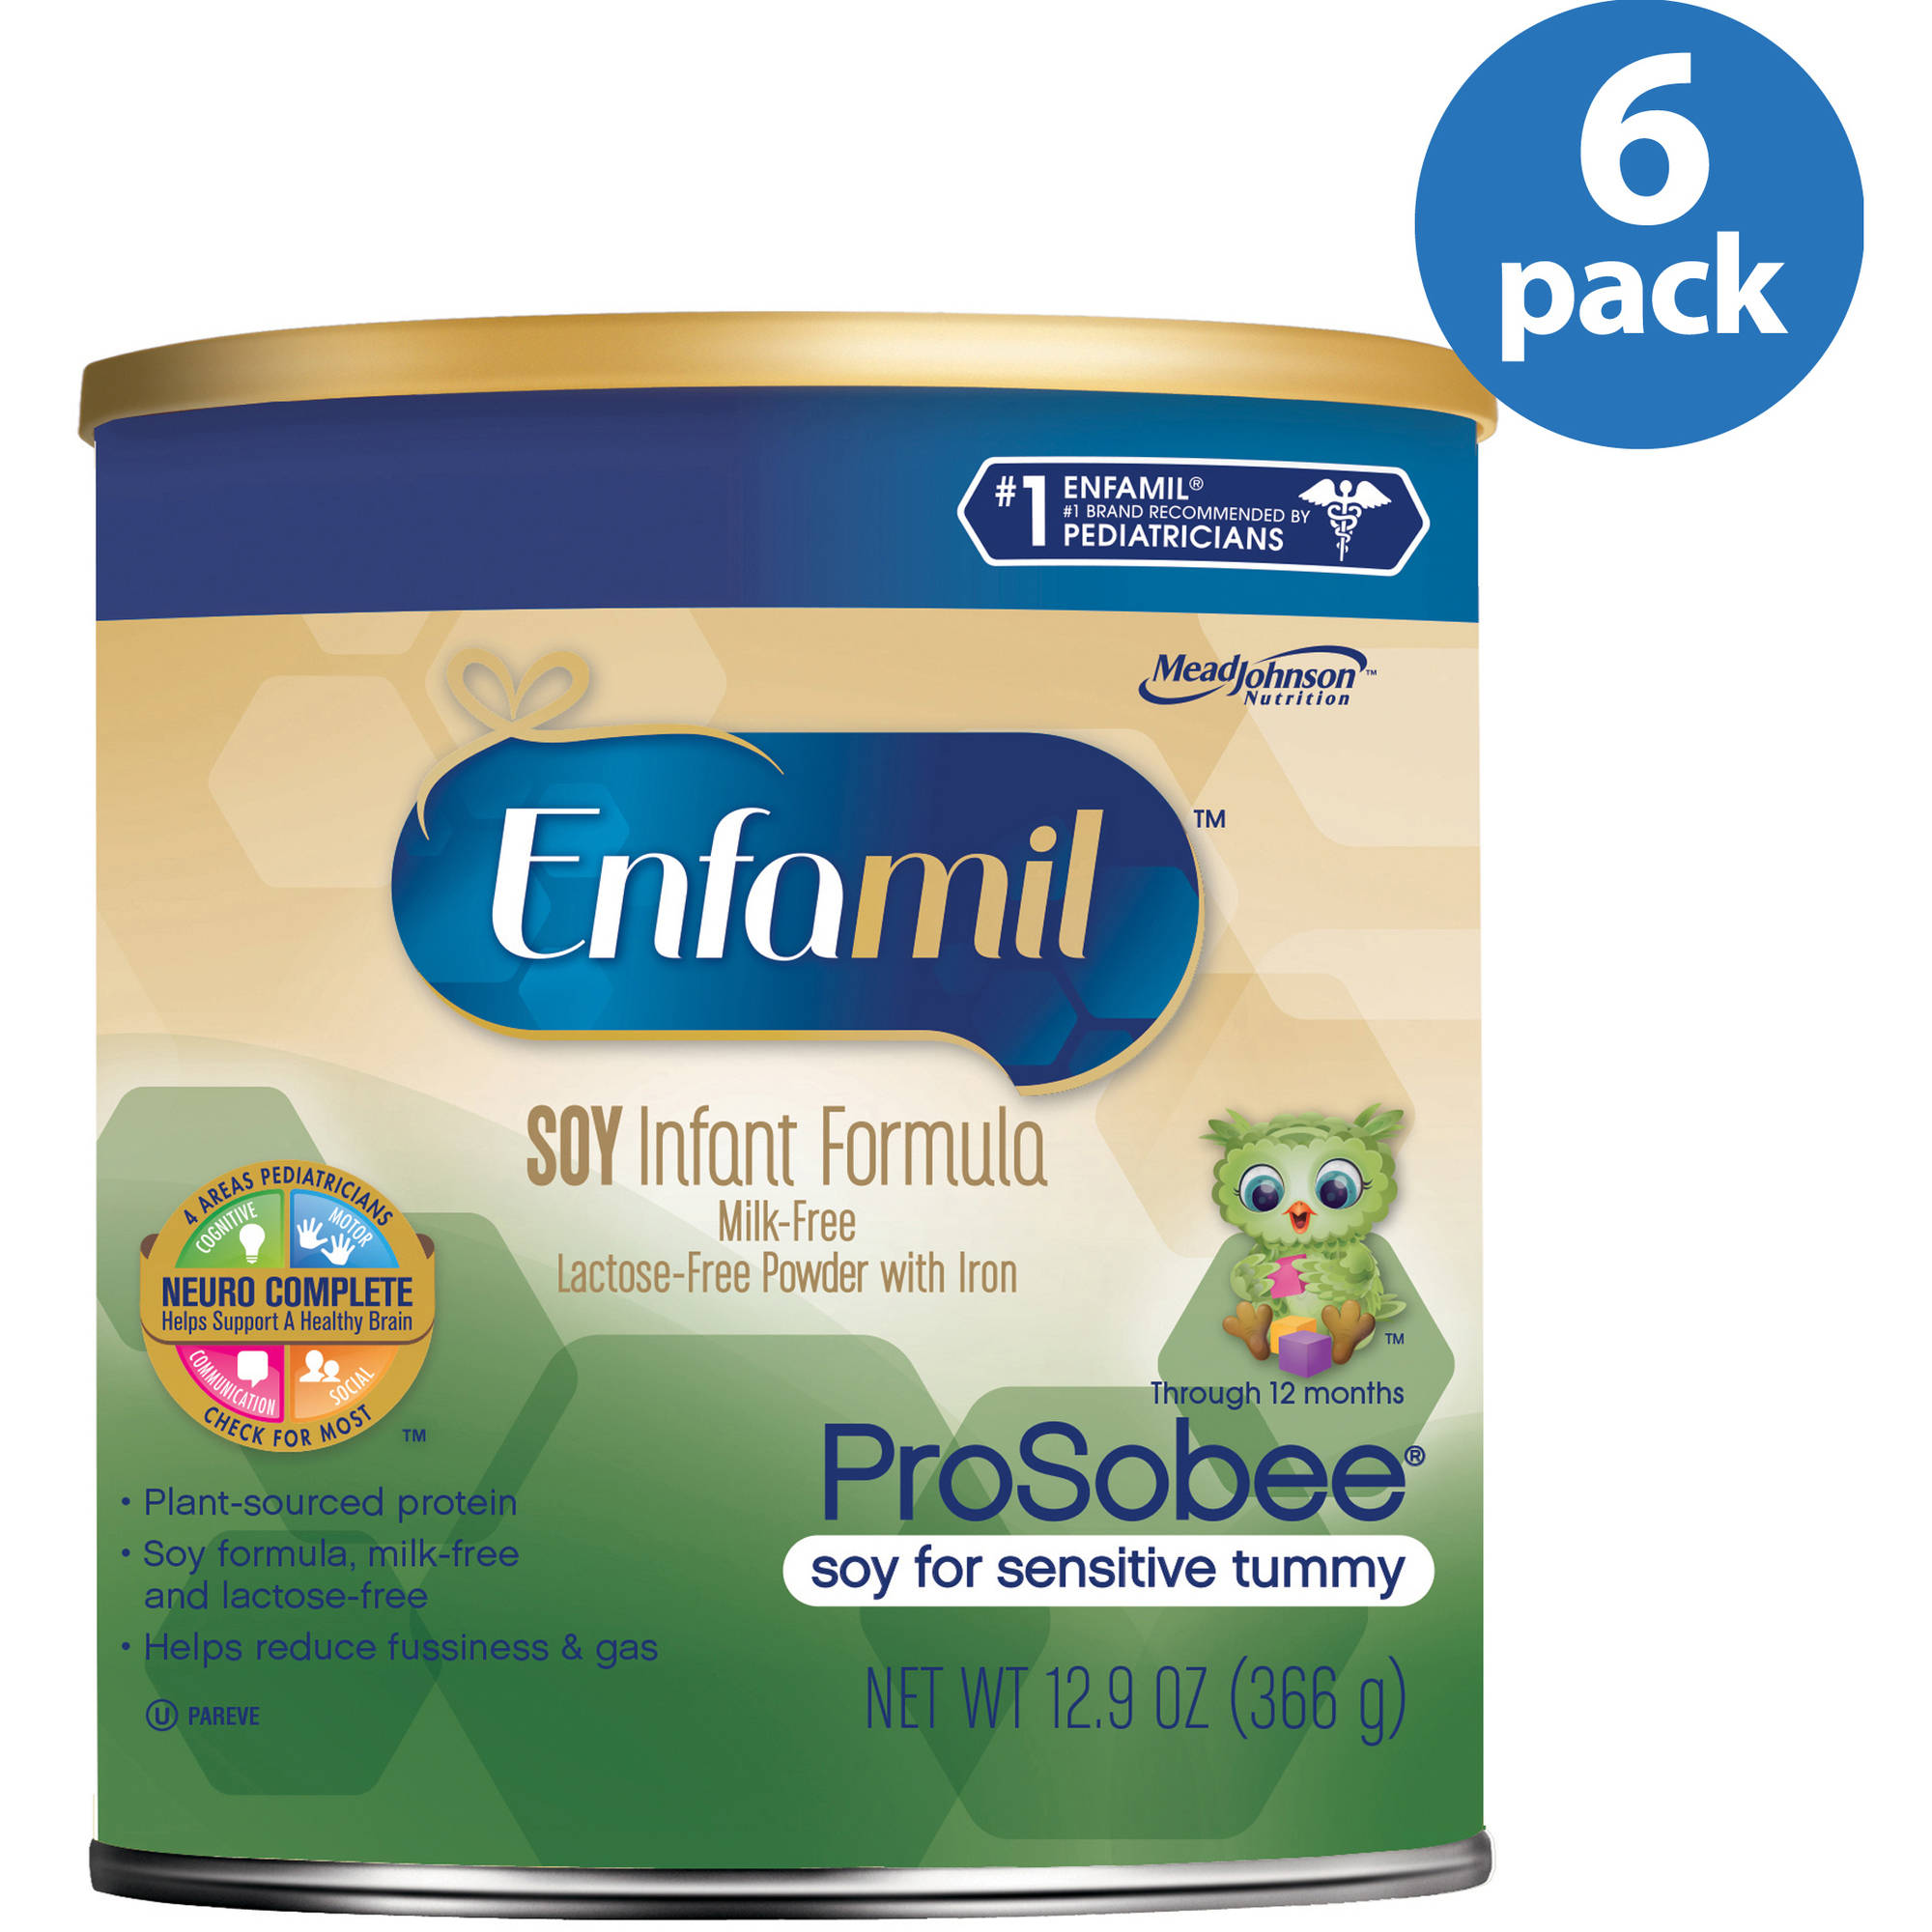 Enfamil Prosobee soy baby formula - 12.9 oz Powder Can (Pack of 6)